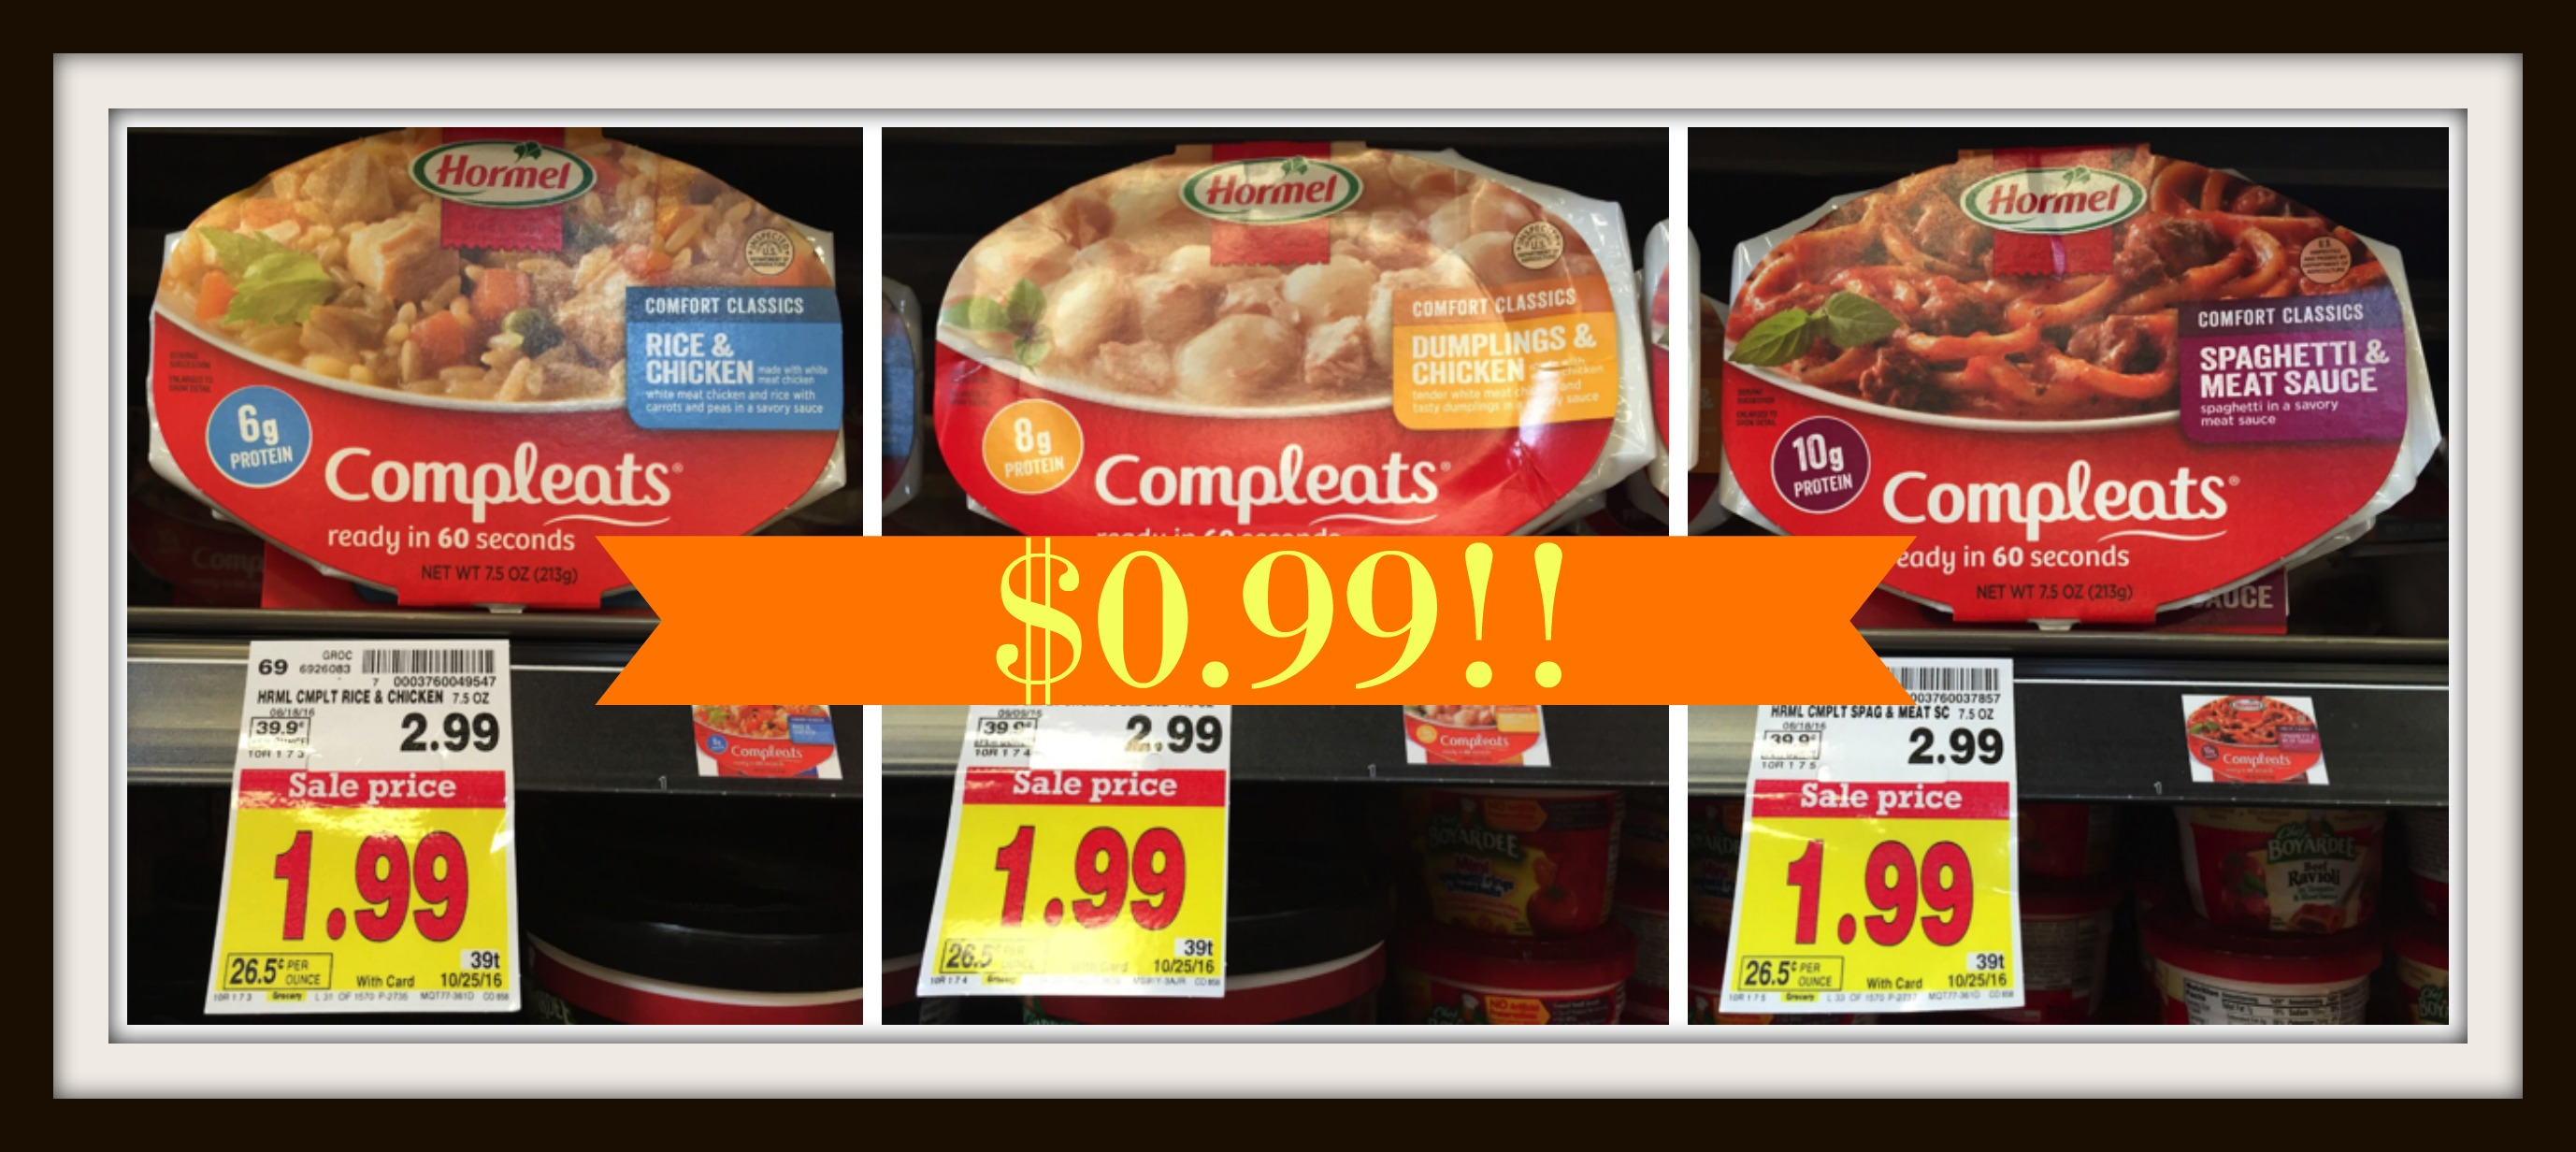 hormel-compleats-image